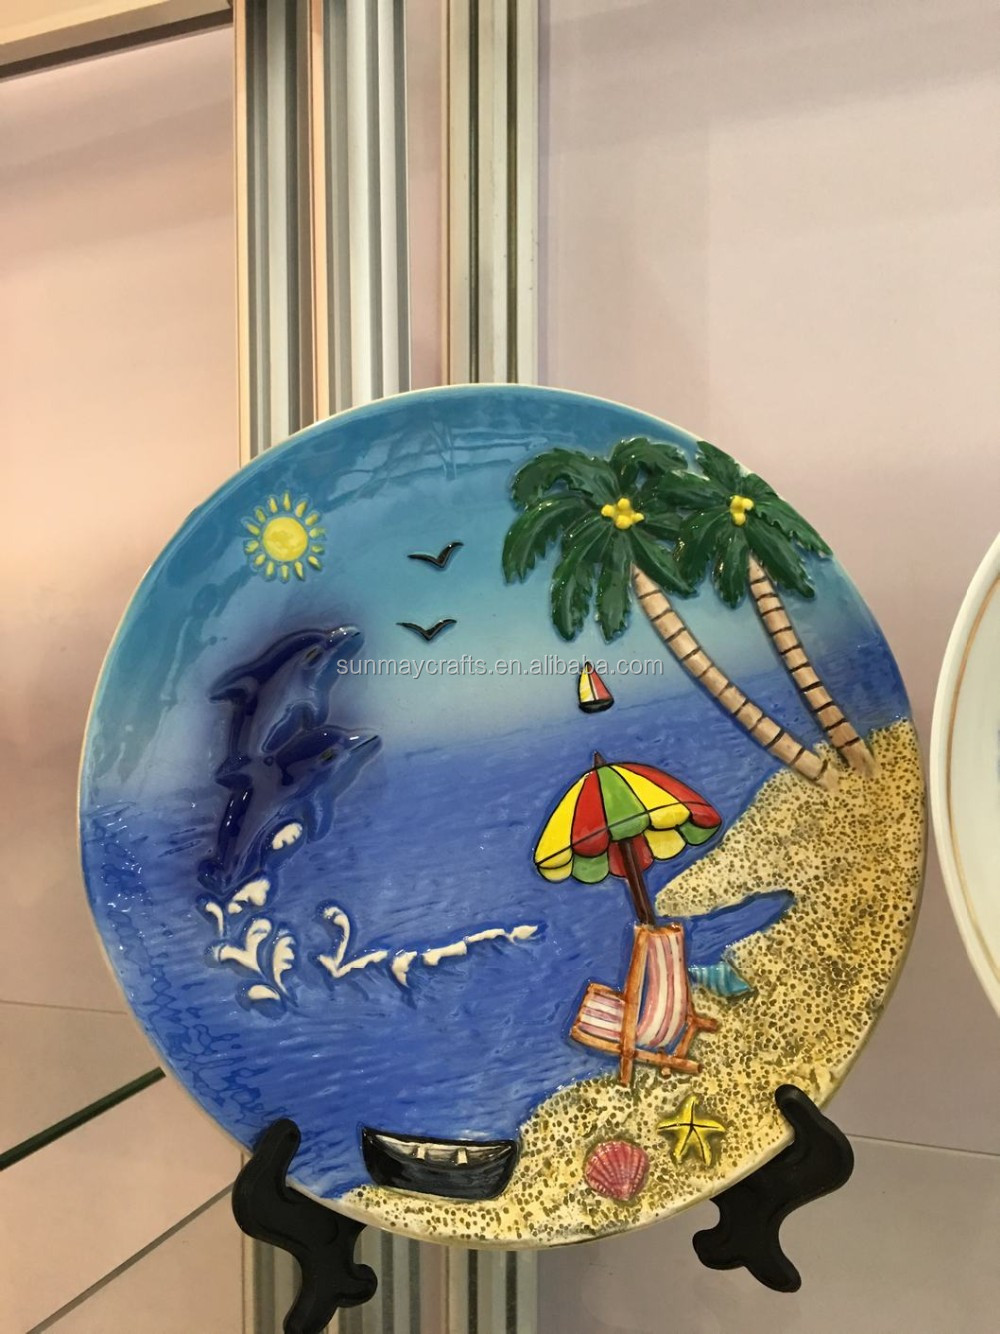 3D landscape ceramic plate for souvenir gifts